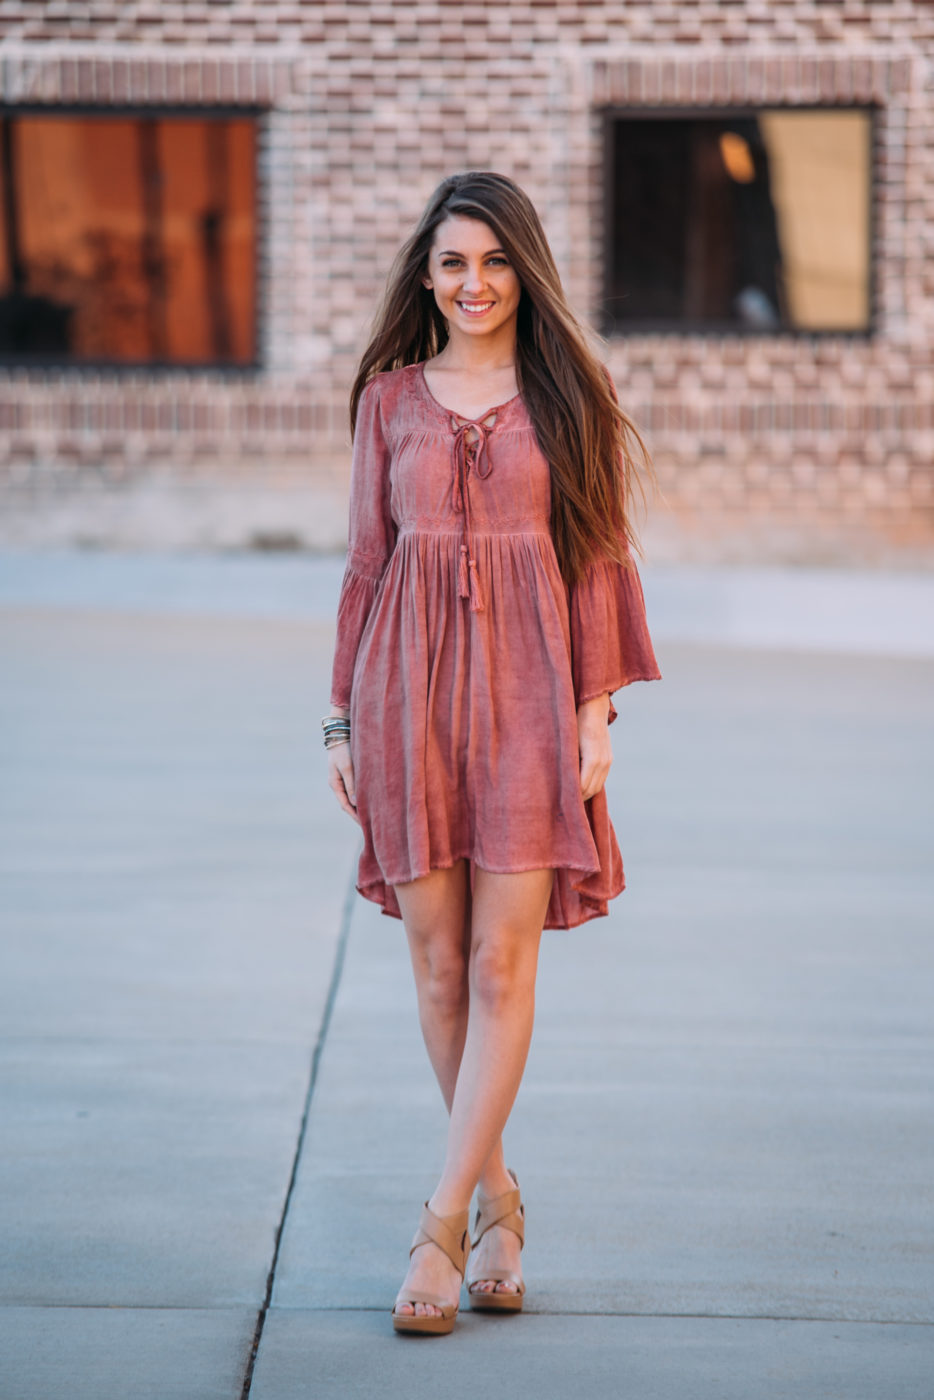 Hipster Chic Dress